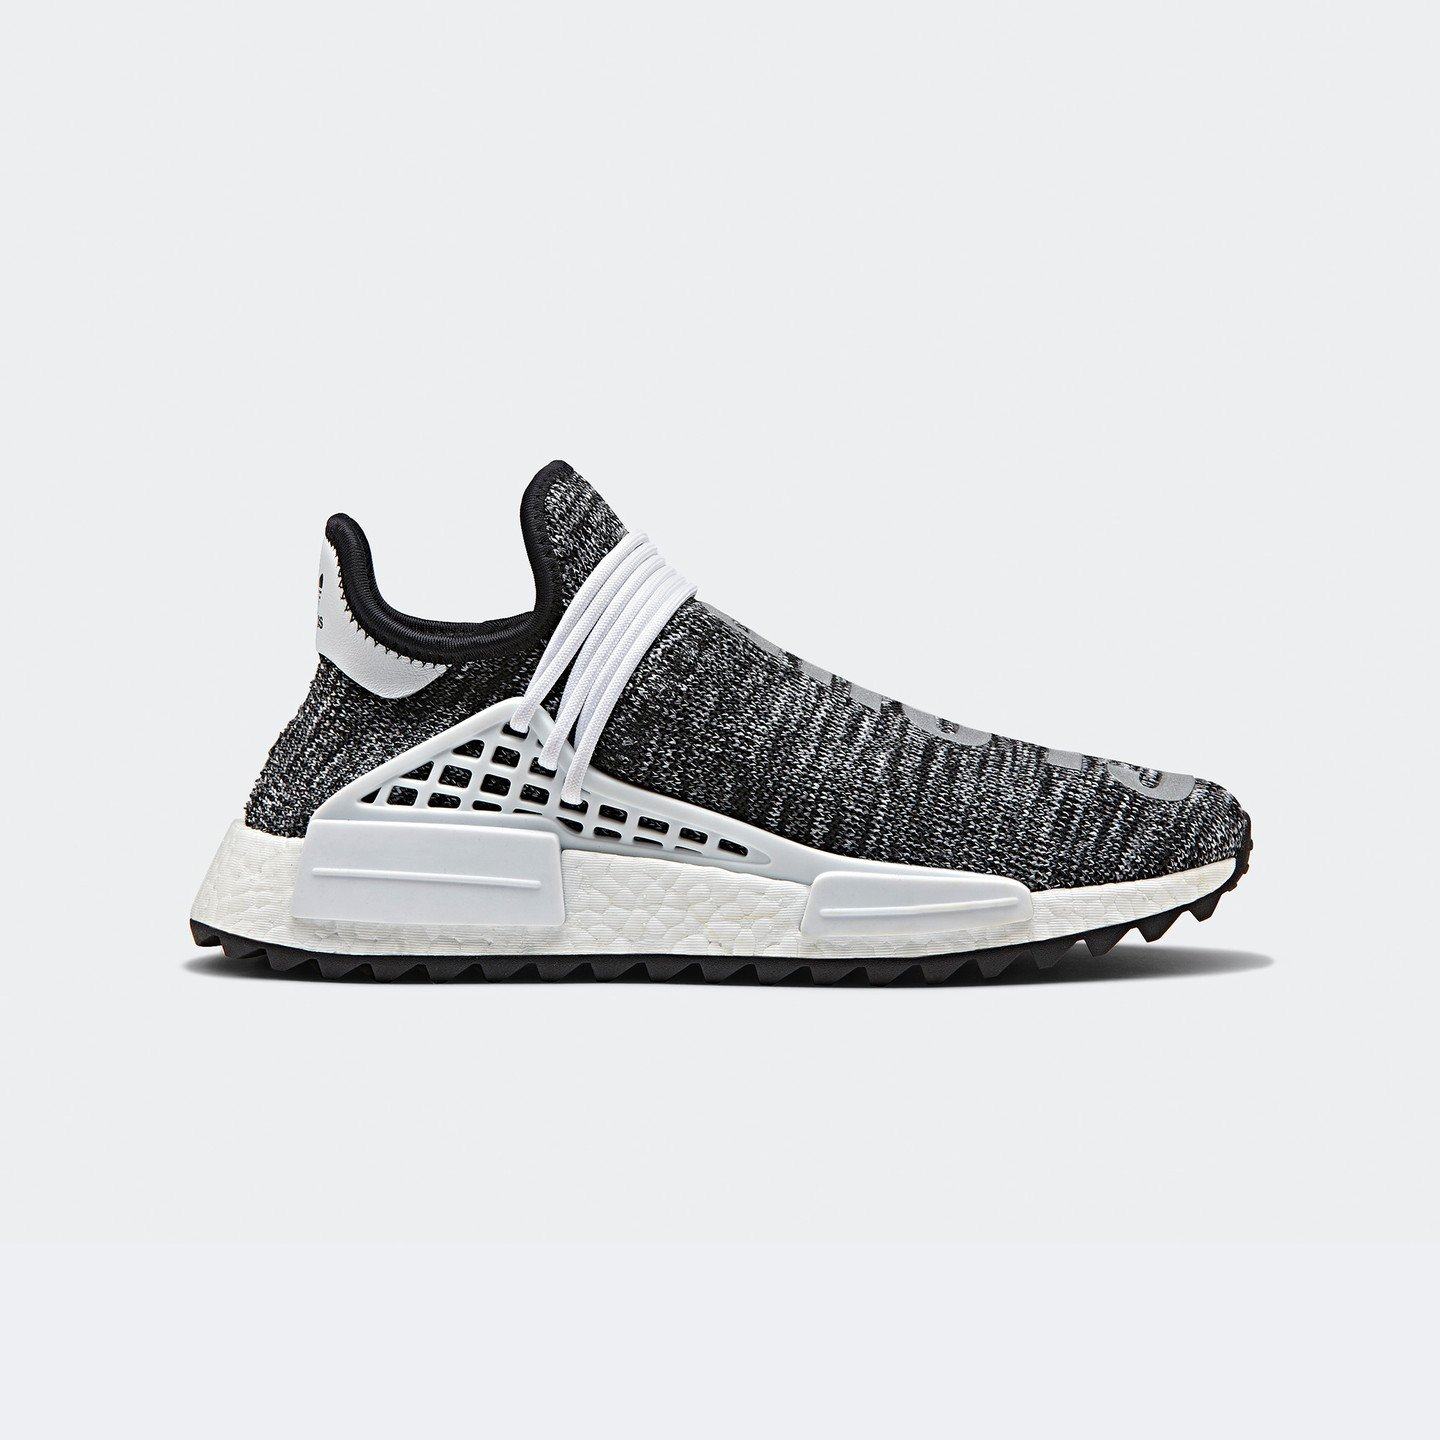 Adidas Pharrell Williams 'Human Race' NMD Core Black / Ftwr White AC7359